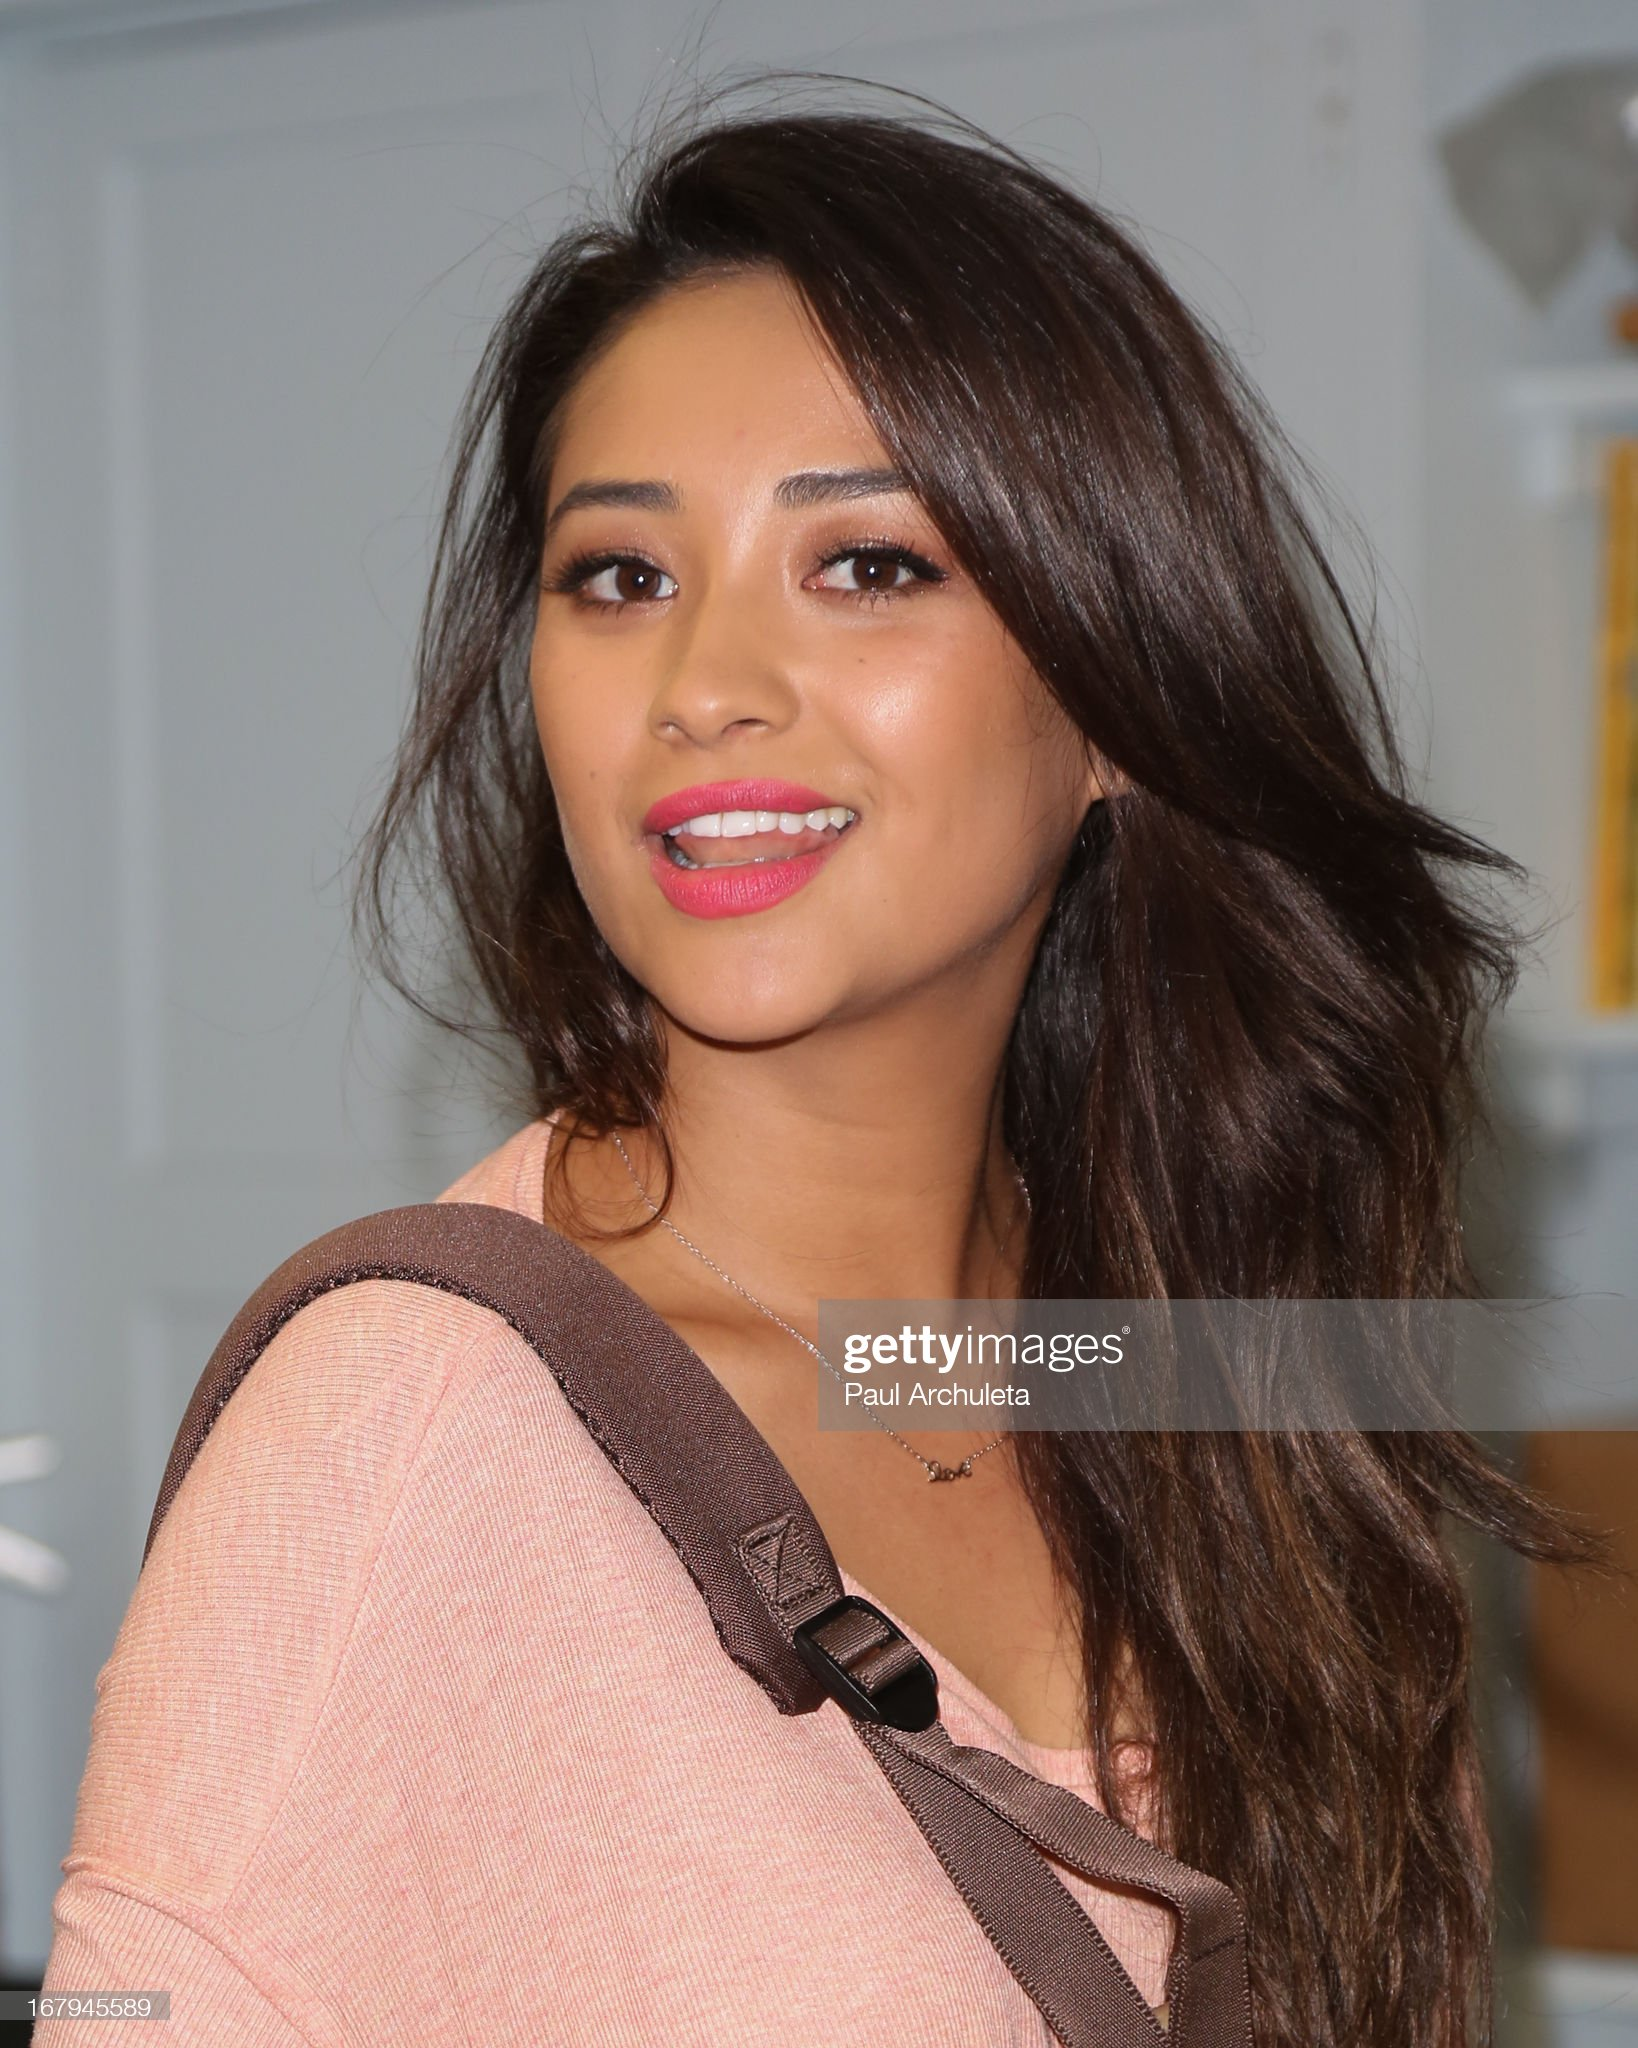 DEBATE sobre guapura de famosos y famosas - Página 3 Actress-shay-mitchell-joins-girl-power-day-to-help-teenage-girls-step-picture-id167945589?s=2048x2048